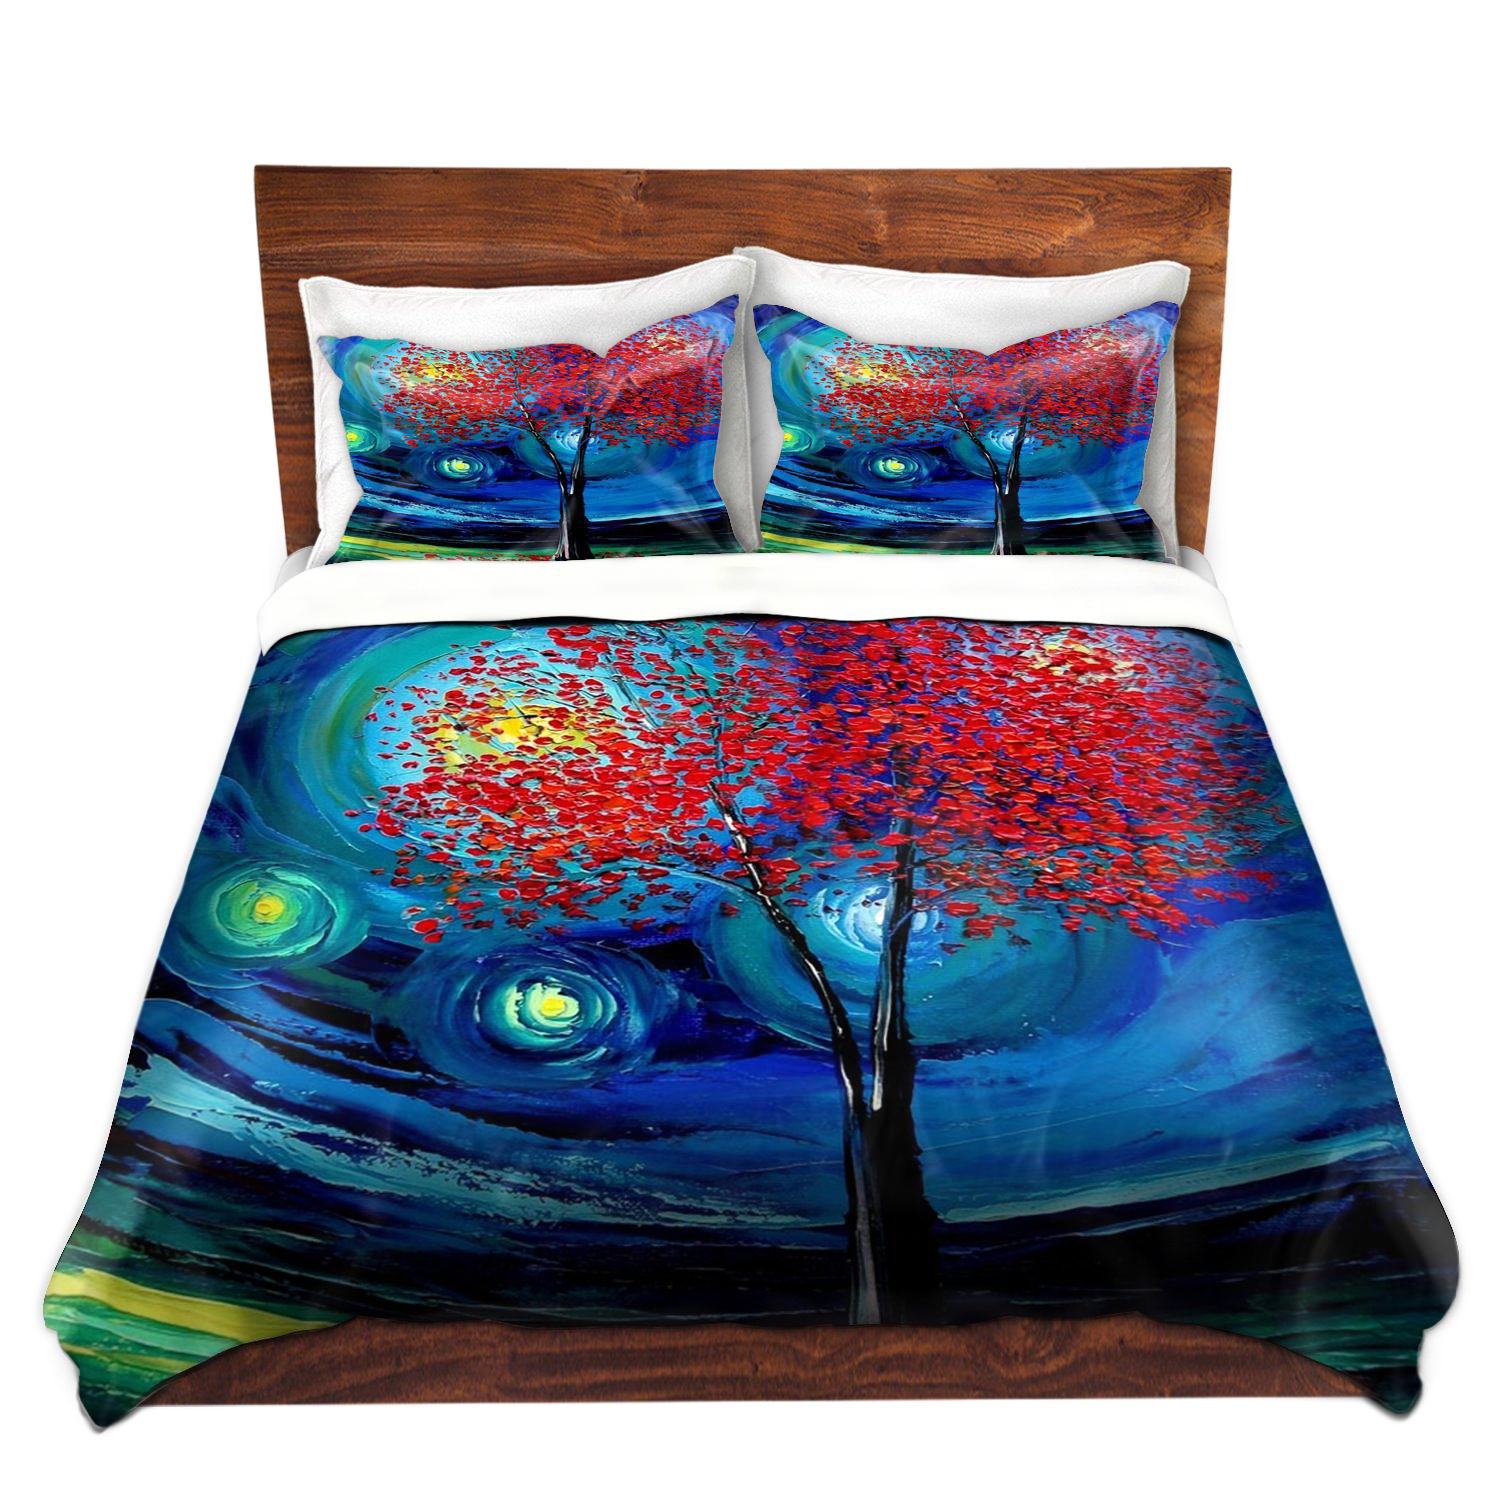 DiaNoche Designs Ann Unique Home Decor Bedding Ideas Story of the Tree Act Xli Cover, 7 Queen Duvet Sham Set